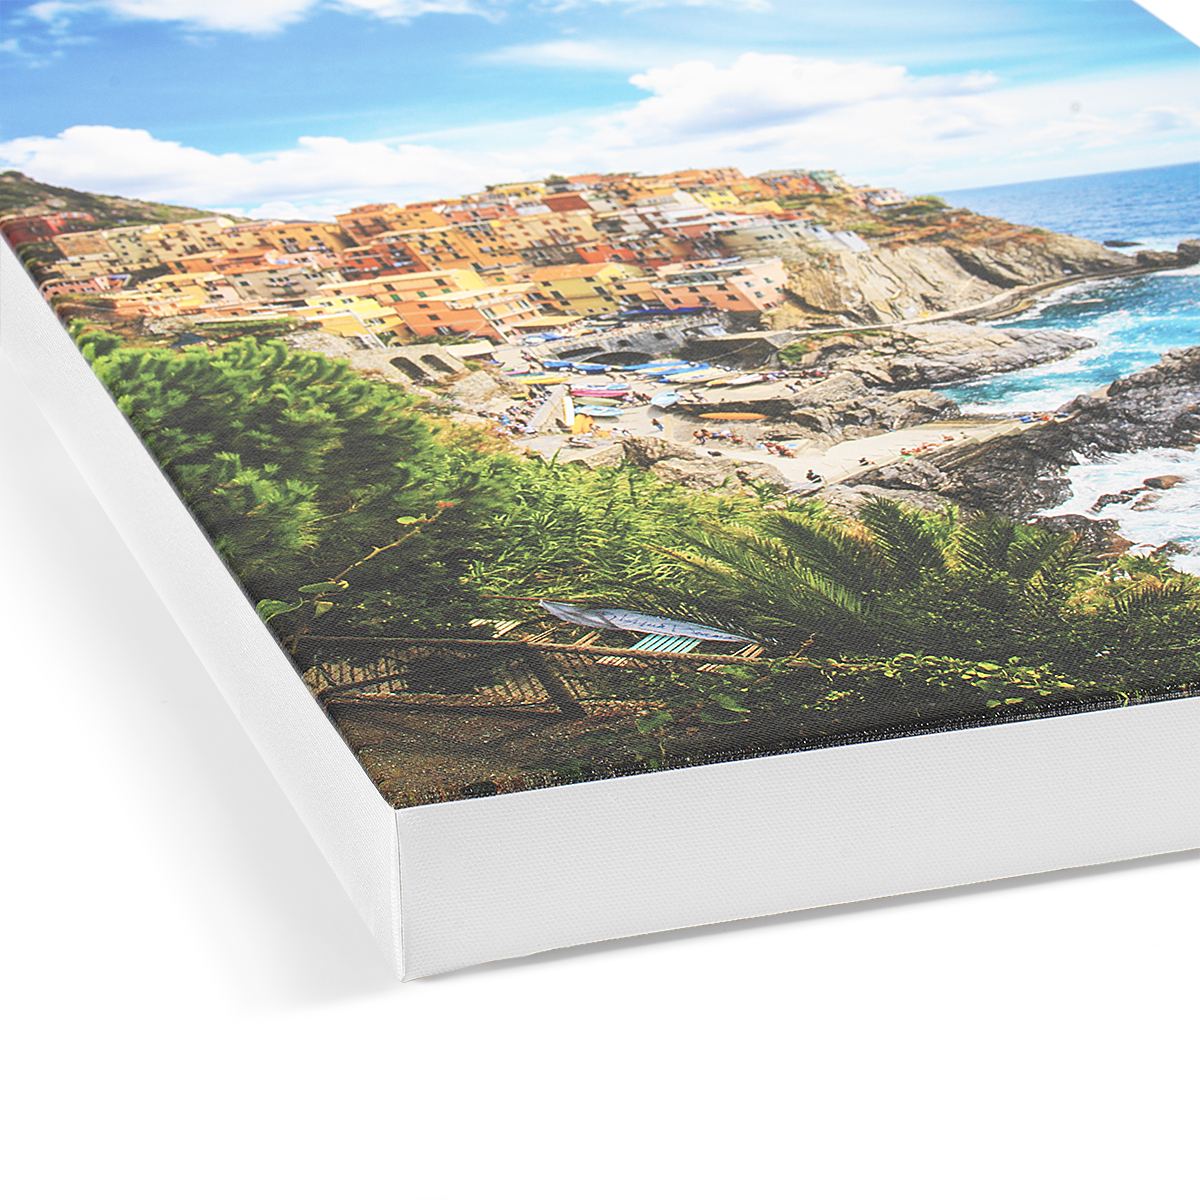 High Quality Digital Photo to Canvas Prints White Wrap